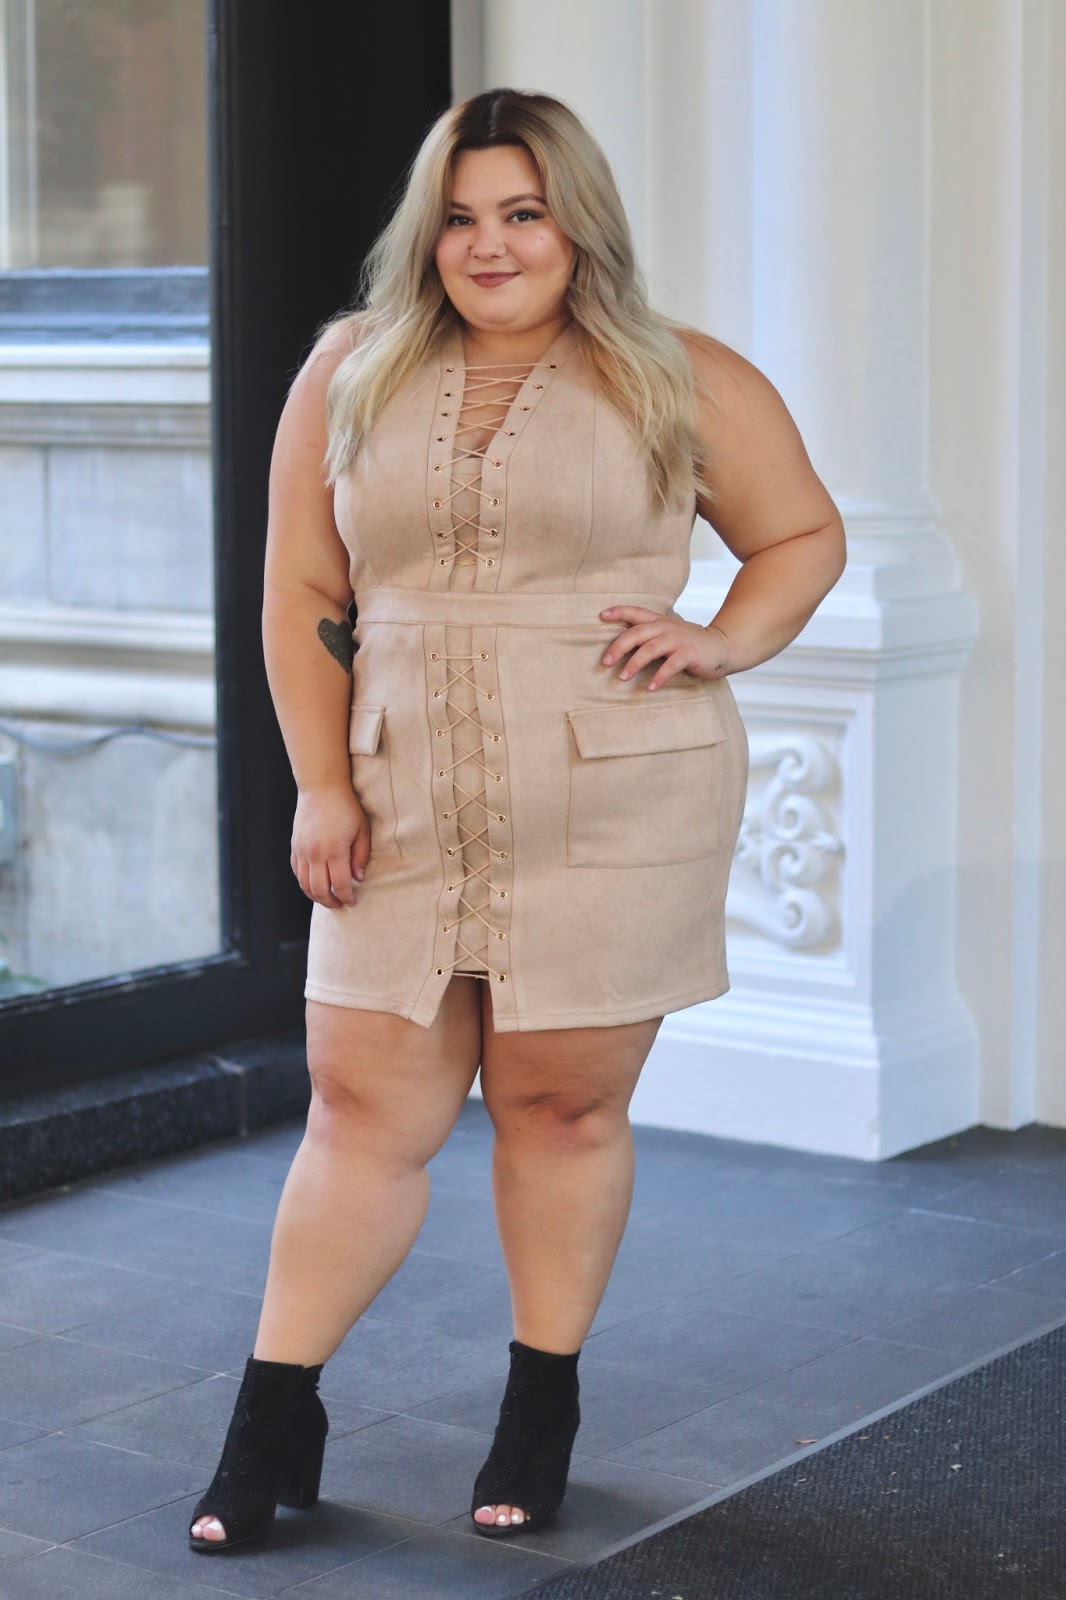 plus size fashion, affordable plus size clothing, petite plus size, sexy plus size clothing, Chicago fashion blogger, midwest blogger, Natalie Craig, Natalie in the city, nat in the city, plus size, curvy clothes, fashion nova, fashion nova curve, blogger review, curves and confidence